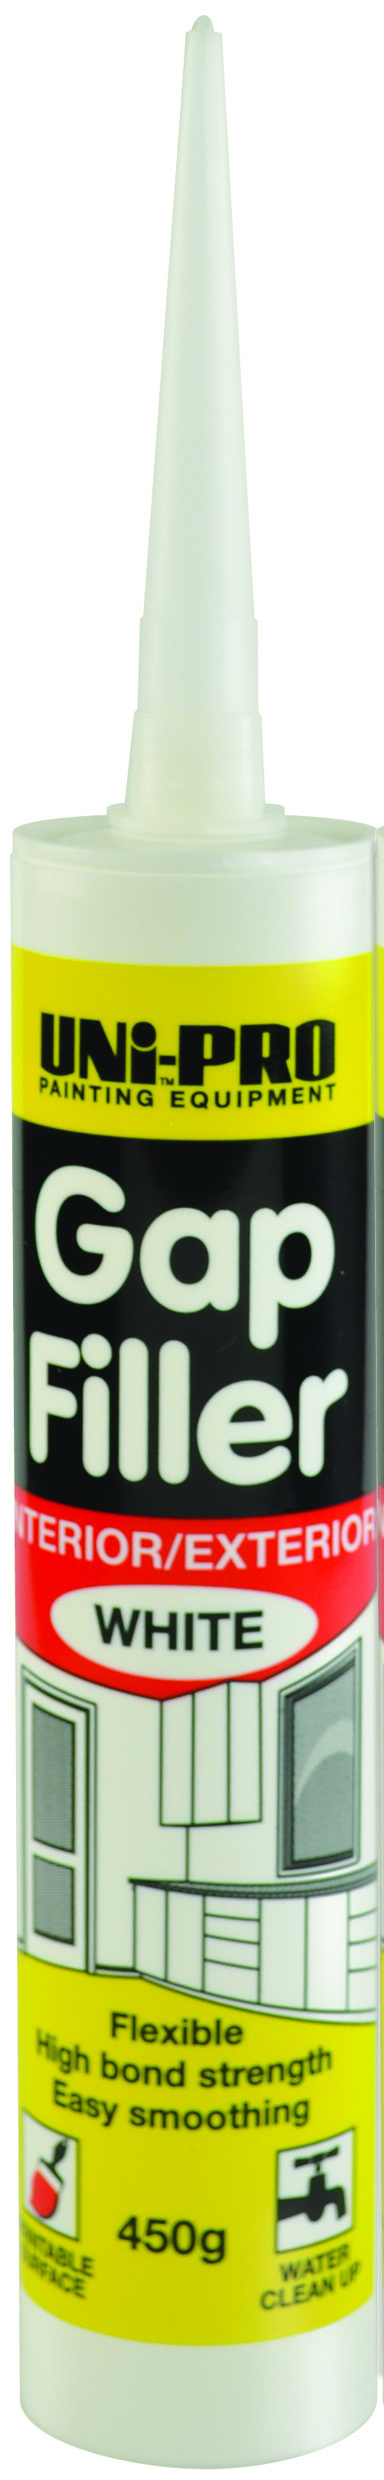 UNi-PRO Gap Filler Interior / Exterior 450gm 1